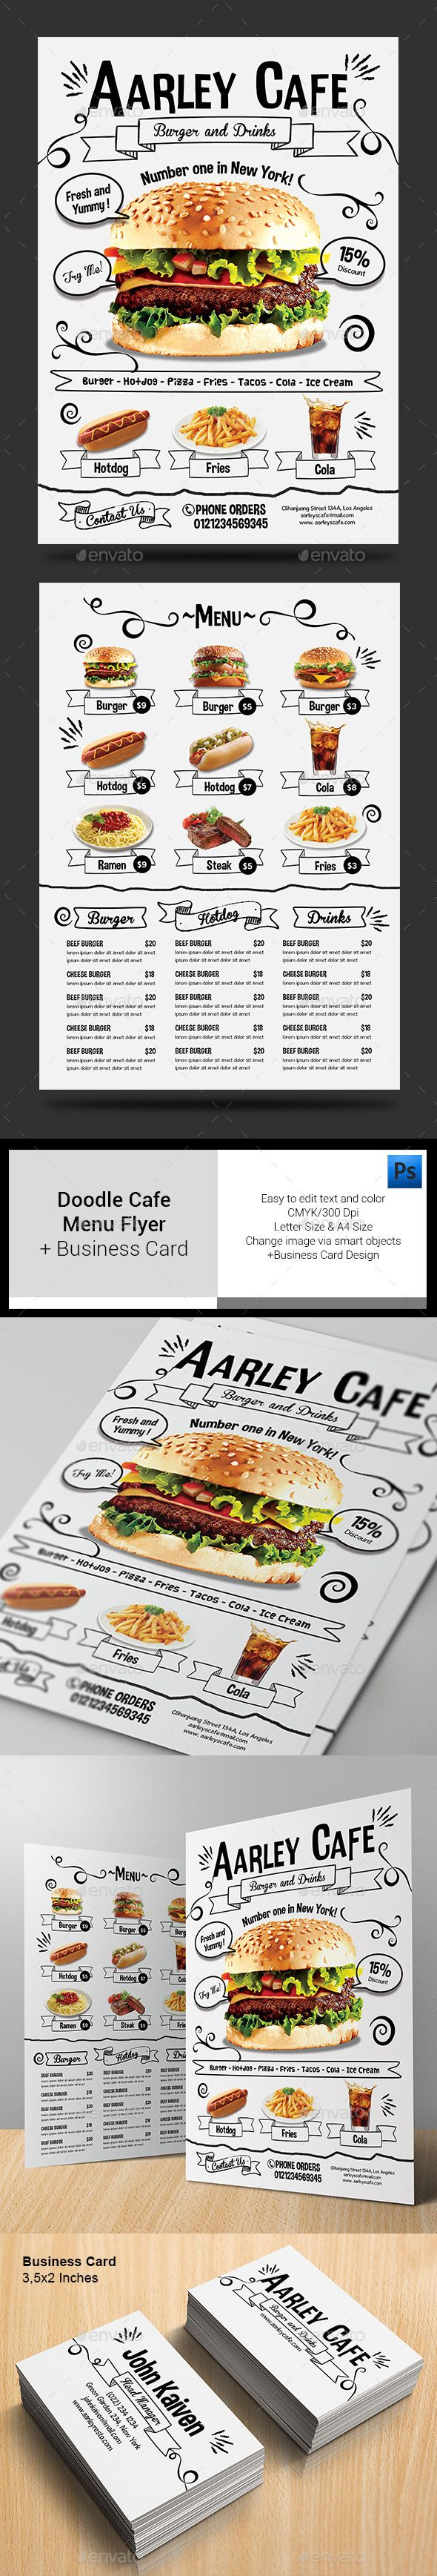 Best 25 Menu card template ideas on Pinterest